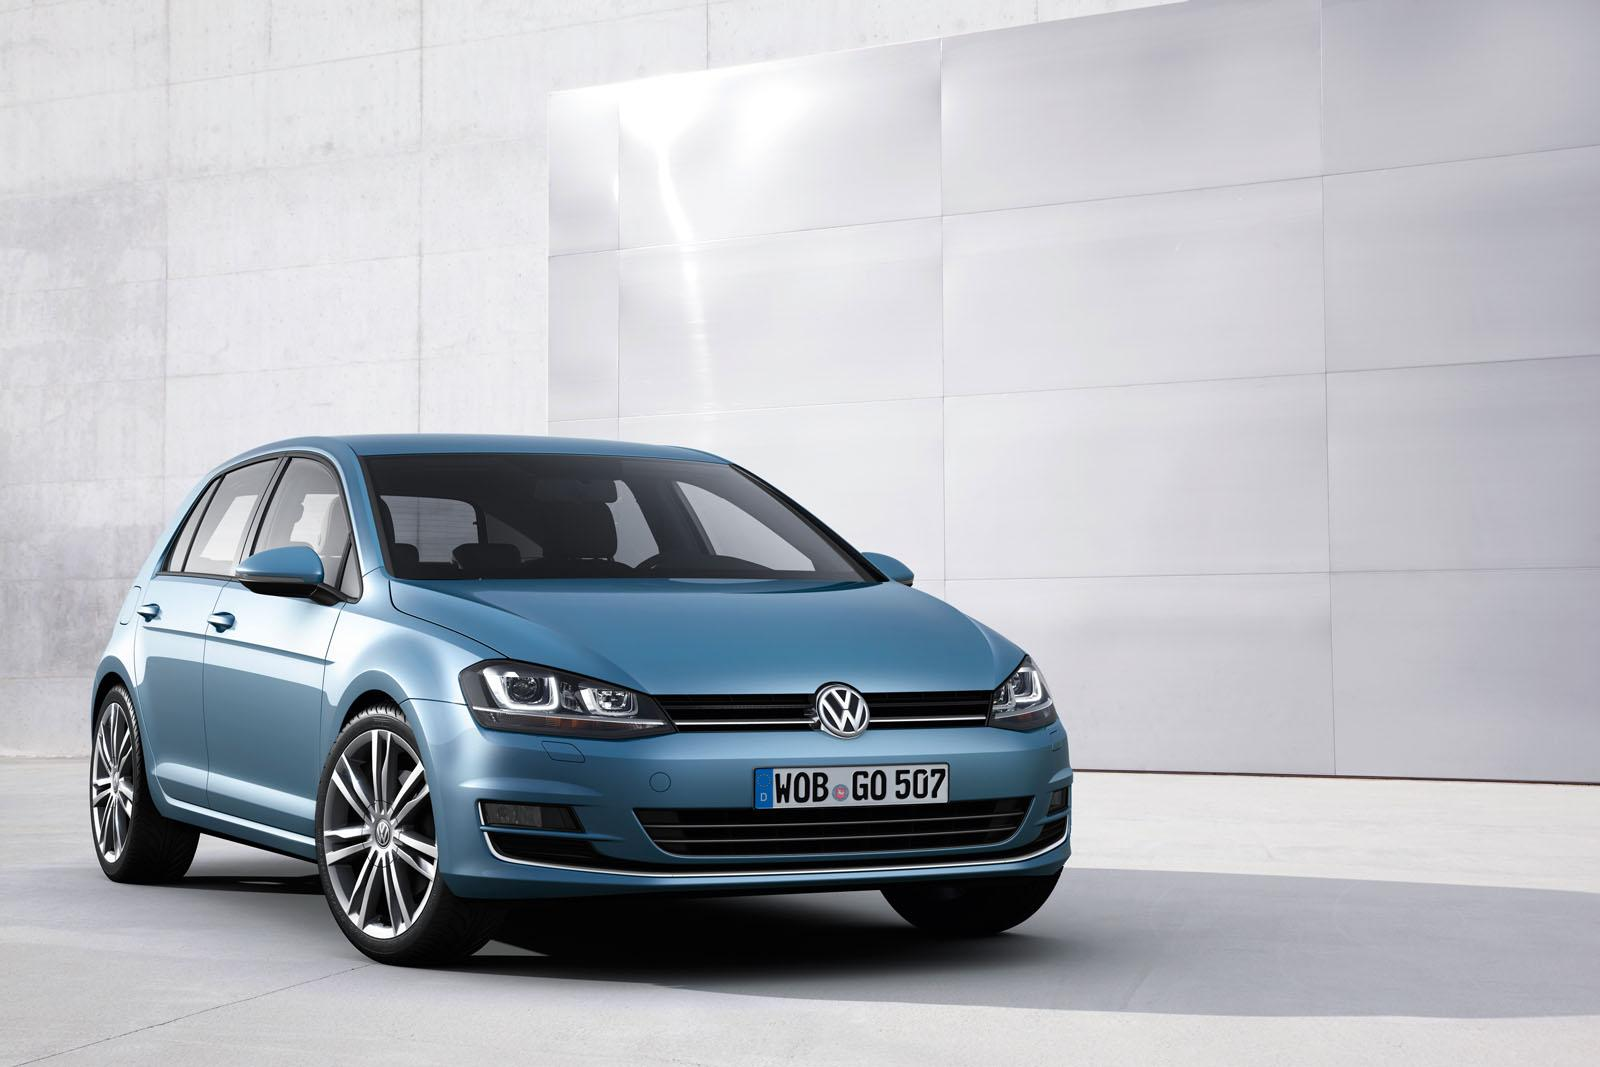 volkswagen golf vii official specs and images released autoevolution. Black Bedroom Furniture Sets. Home Design Ideas